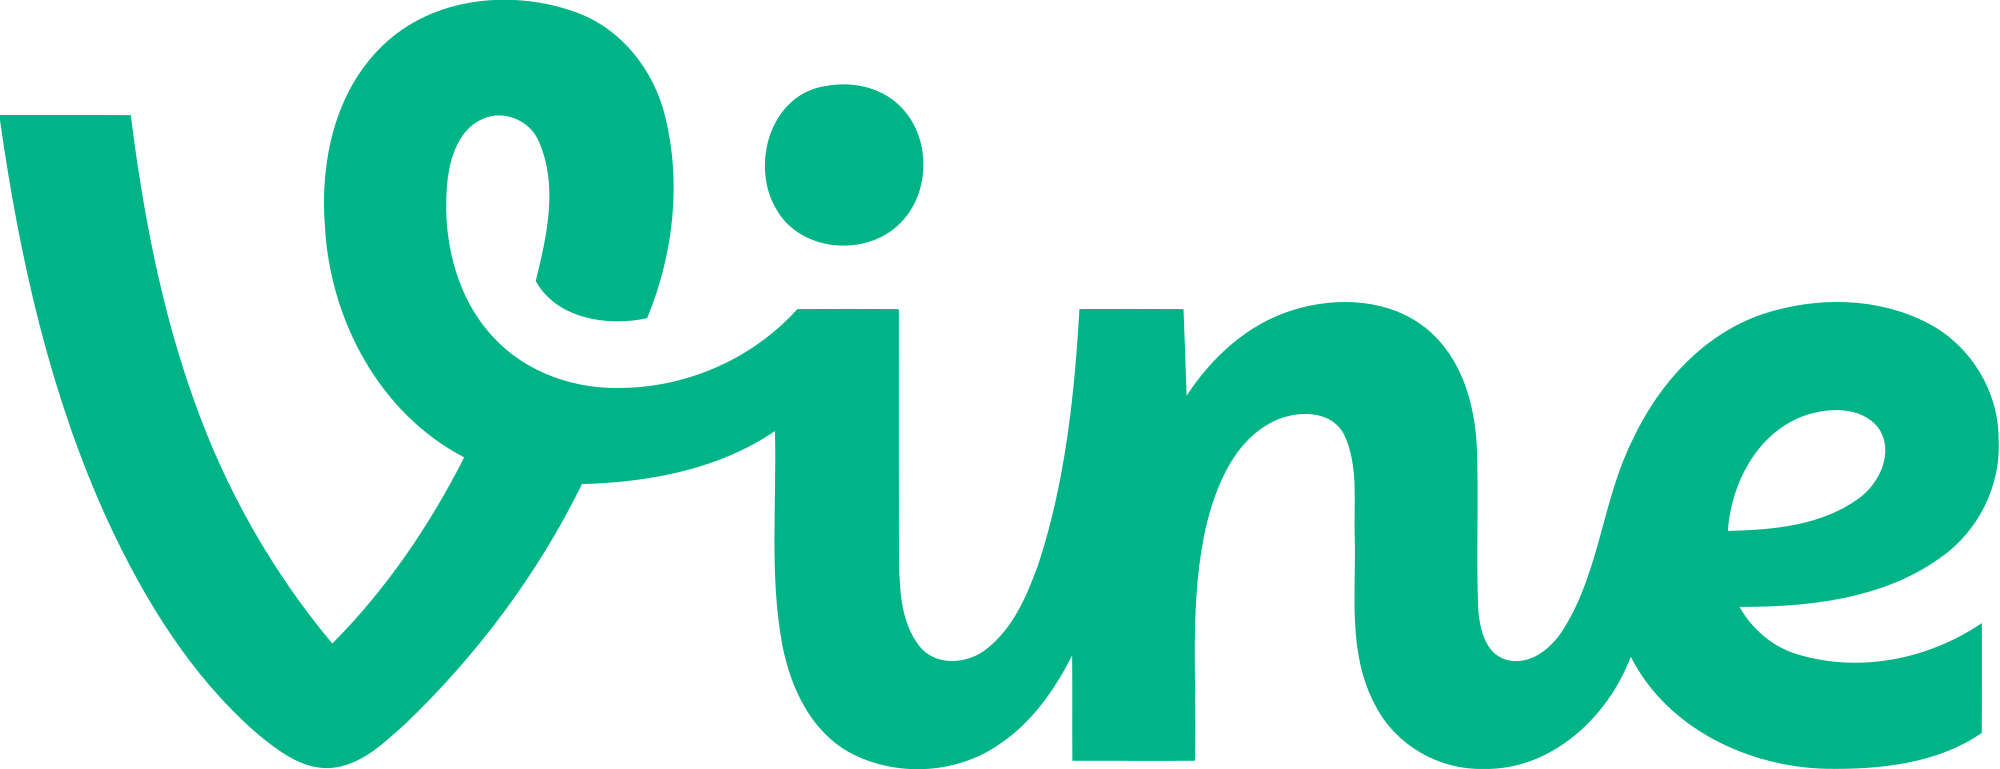 Vine Logo - File:Vine wordmark.svg - Wikimedia Commons